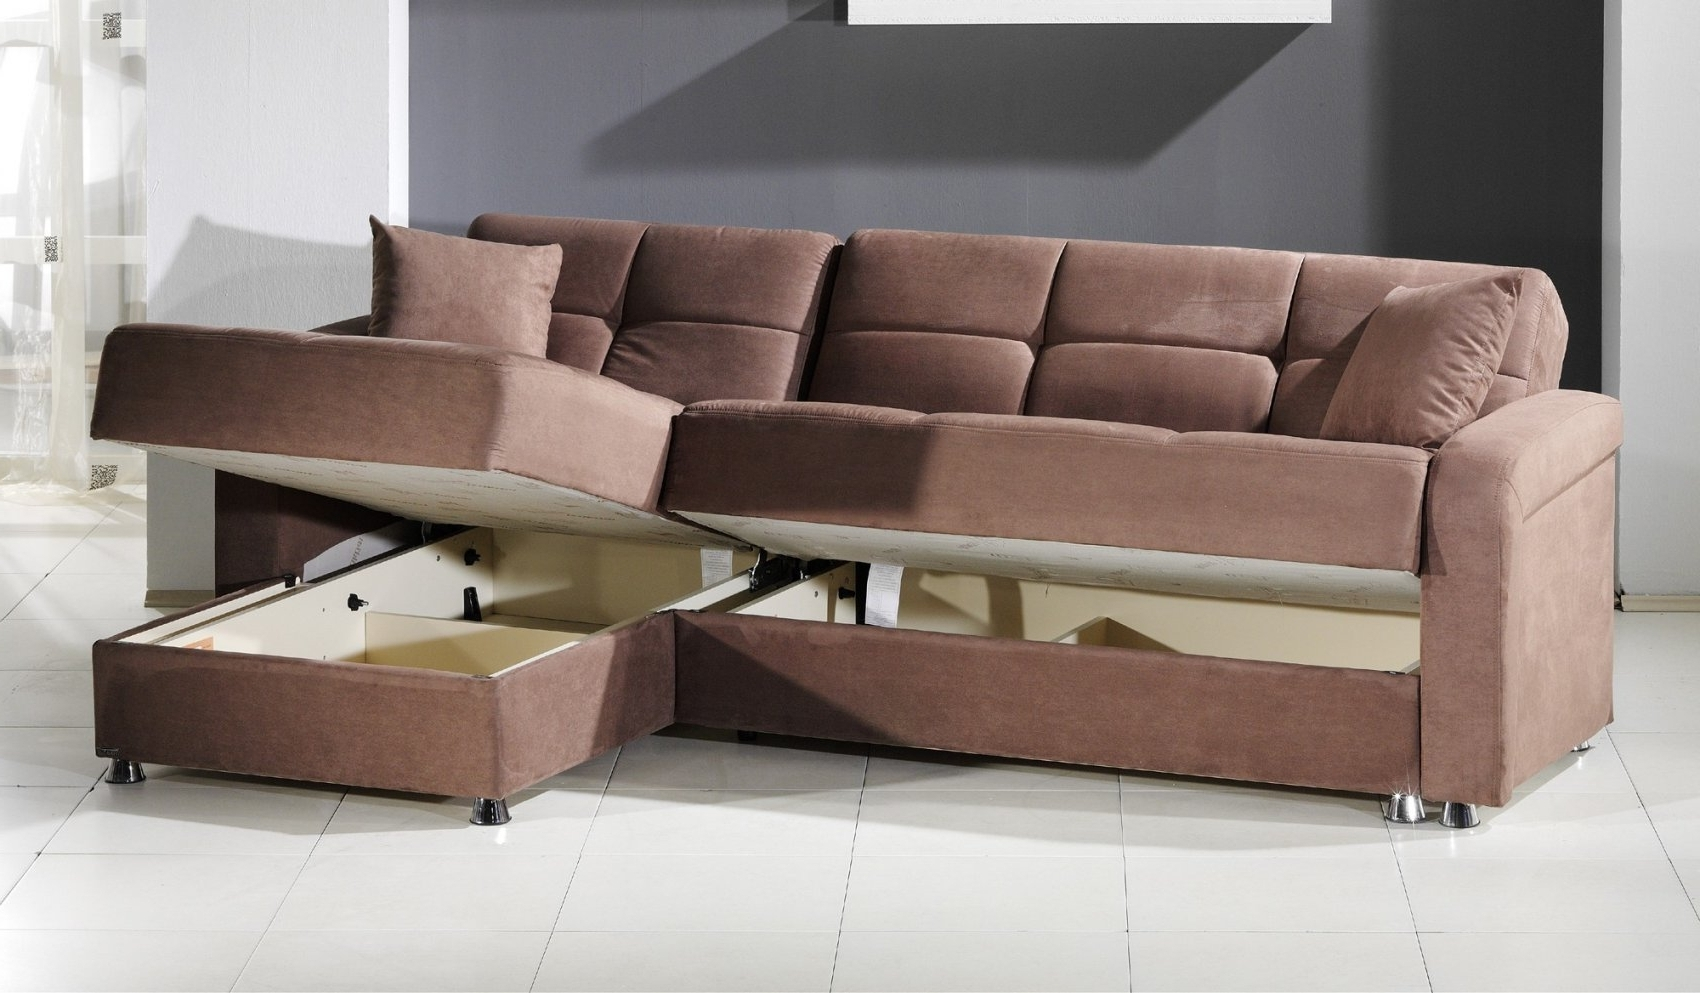 Sleeper Sofas With Storage Chaise With Regard To Most Up To Date Brown Leather Sectional Sleeper Sofa With Chaise Lounge And With (View 11 of 15)